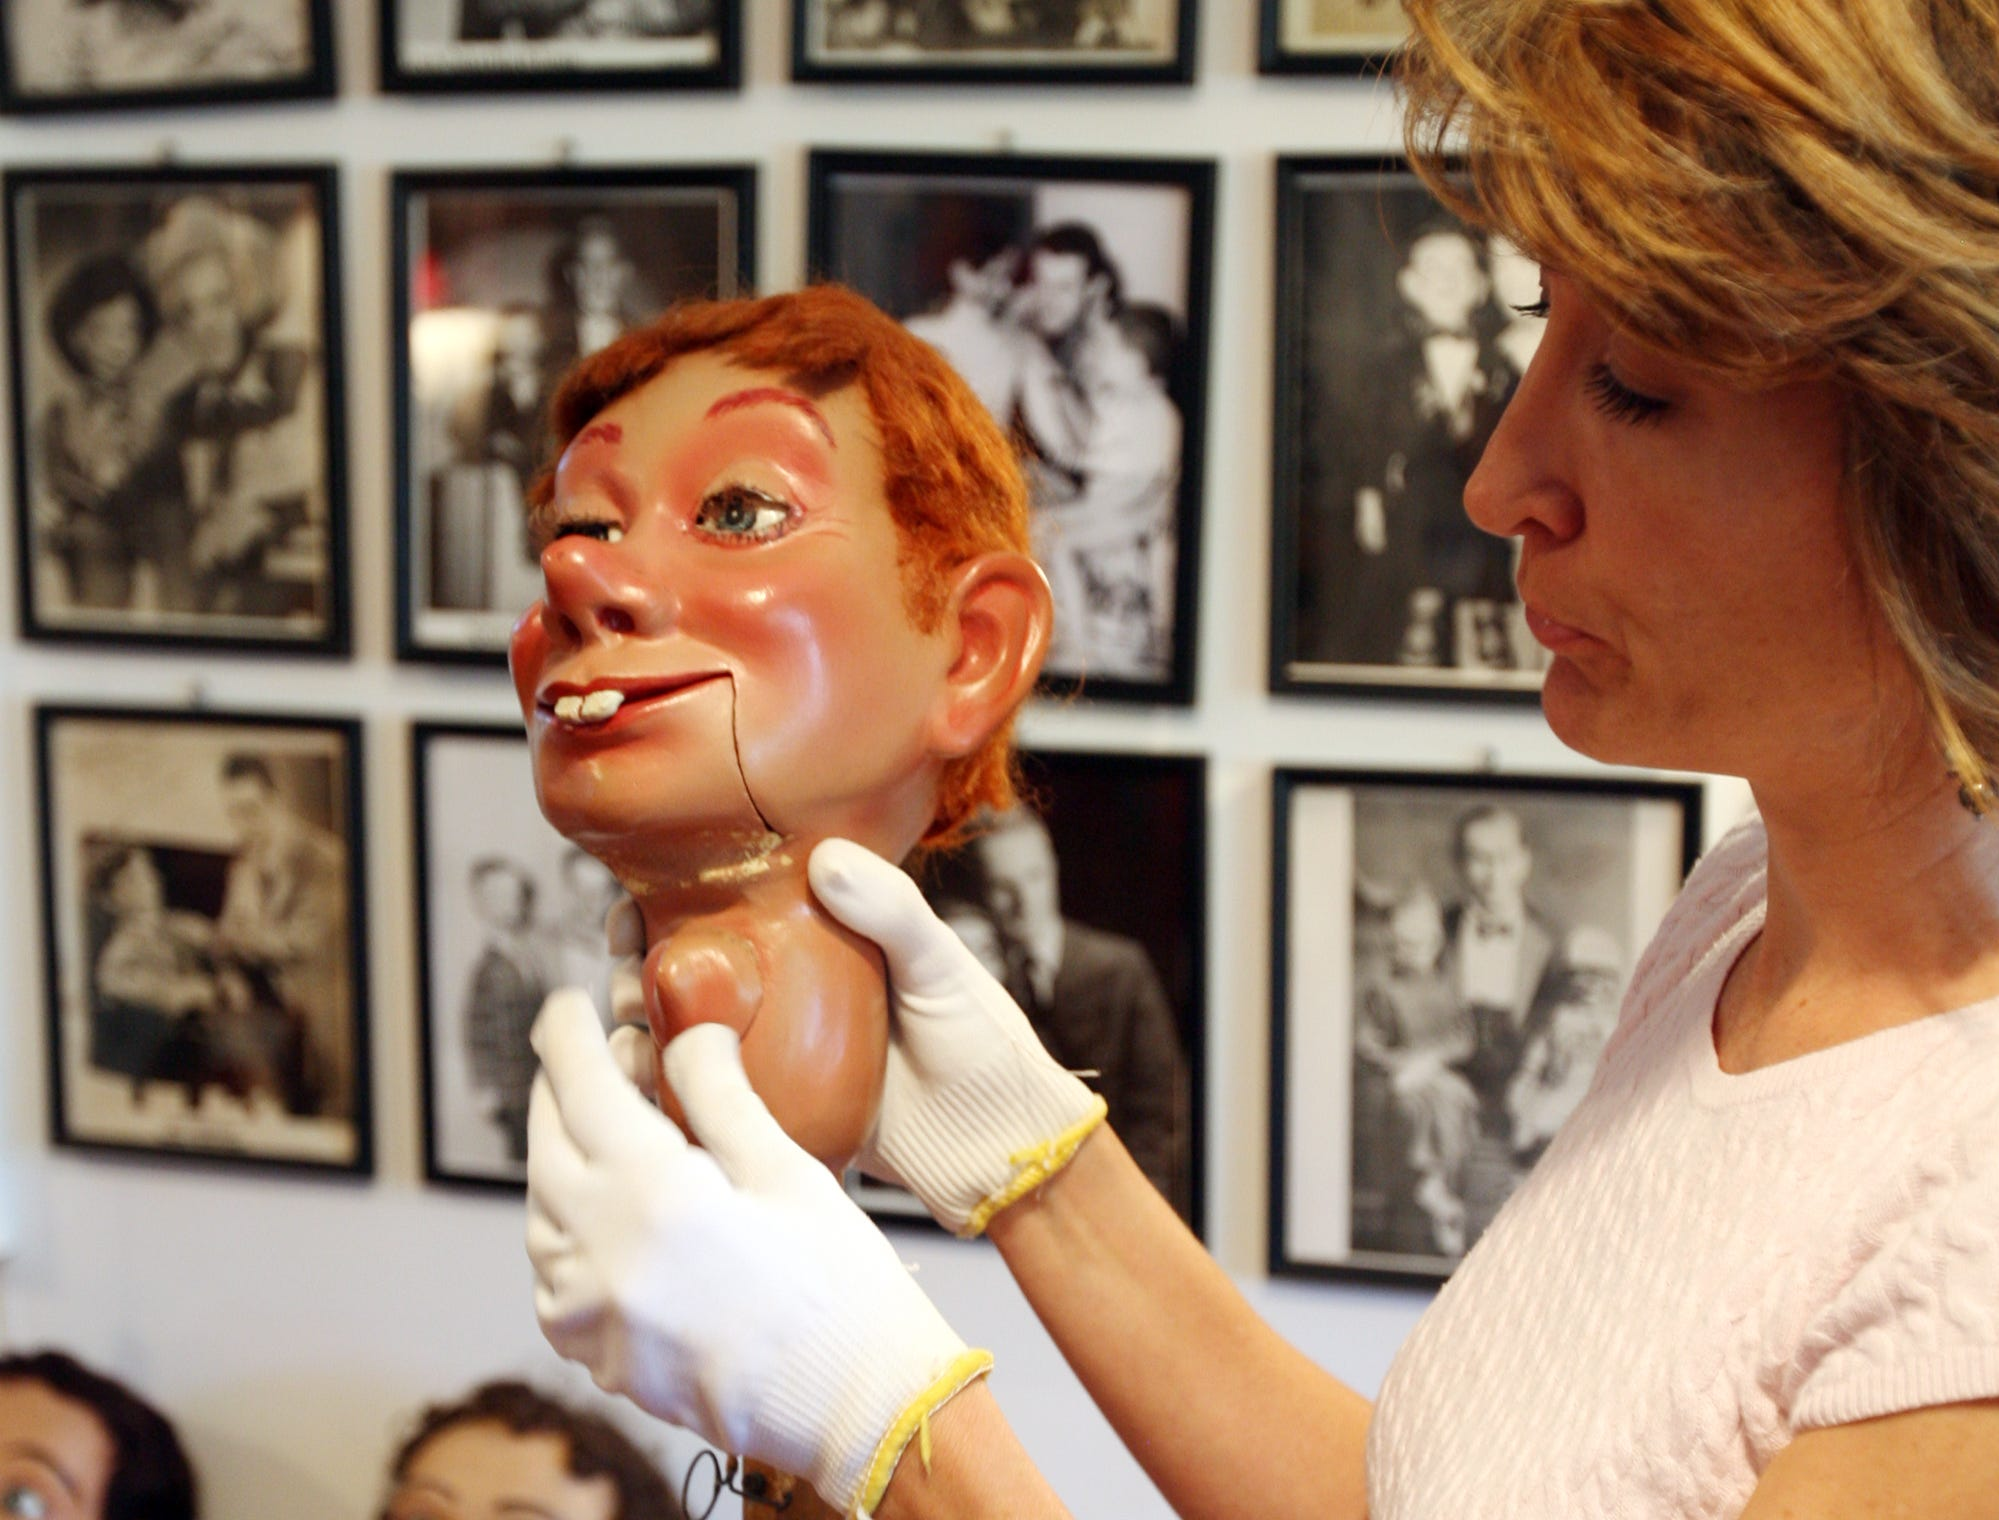 Lisa Sweasy, curator at Vent Haven  Museum, showed how the dolls worked. Vent Haven Museum, the world's only museum of ventriloquial figures and memorabilia in Fort Mitchell, Kentucky.